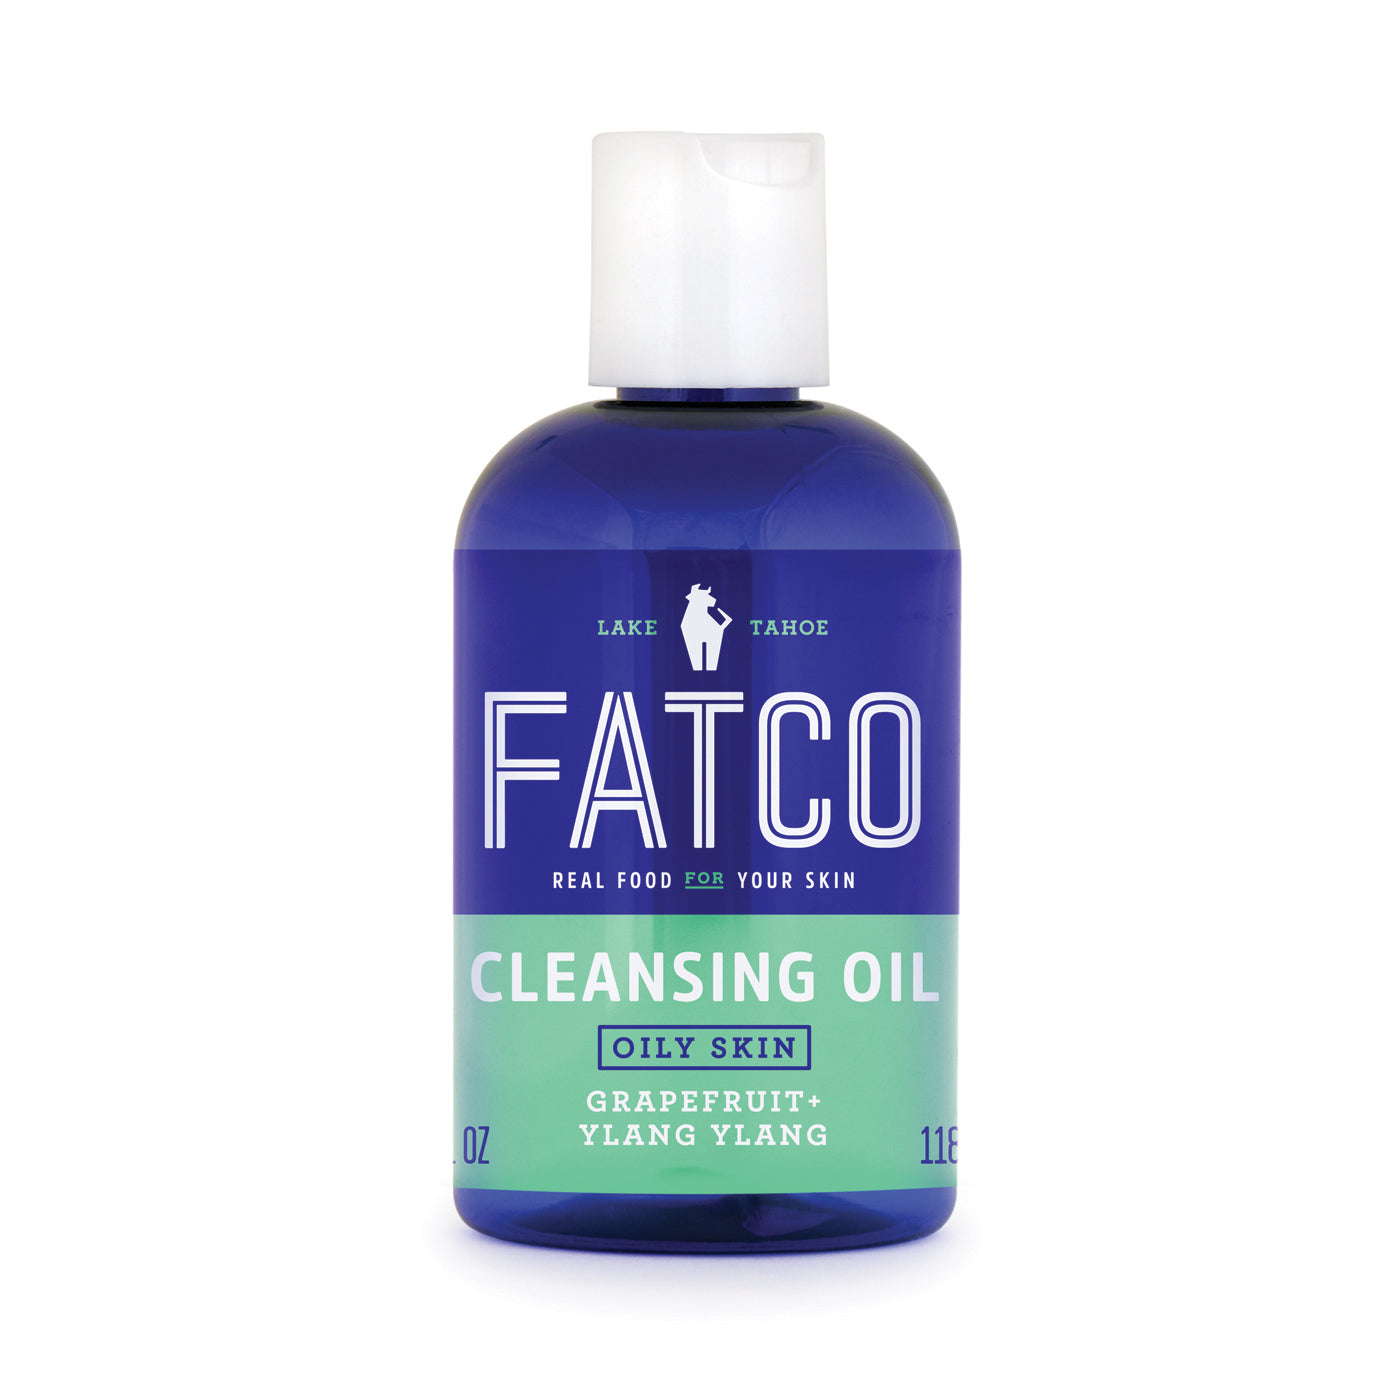 CLEANSING OIL FOR OILY SKIN 4 OZ-FATCO Skincare Products paleo skincare vegan friendly OCM cleanser oily